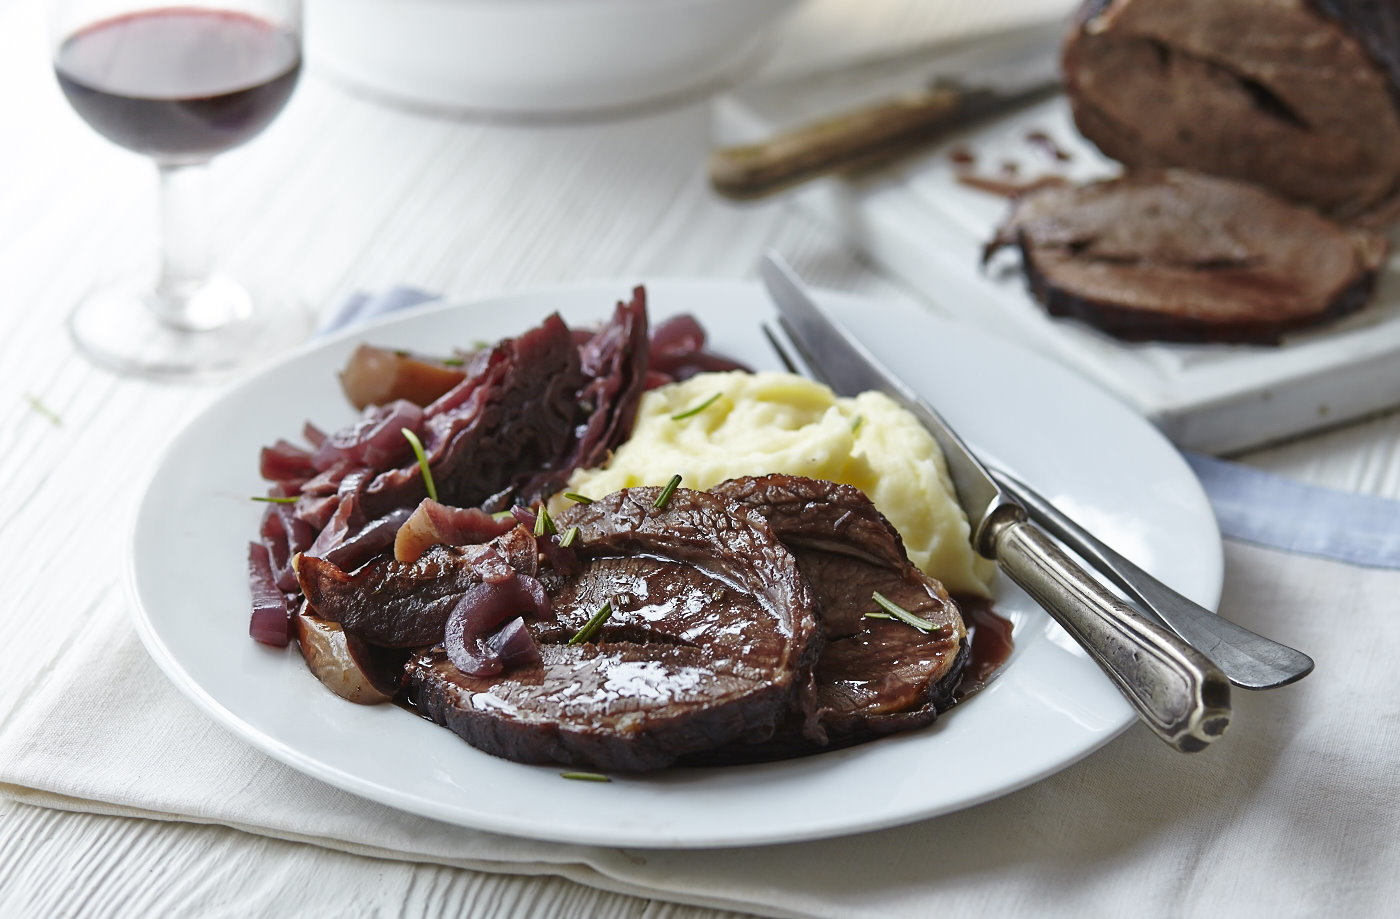 Red wine braised brisket and red cabbage one-pot recipe